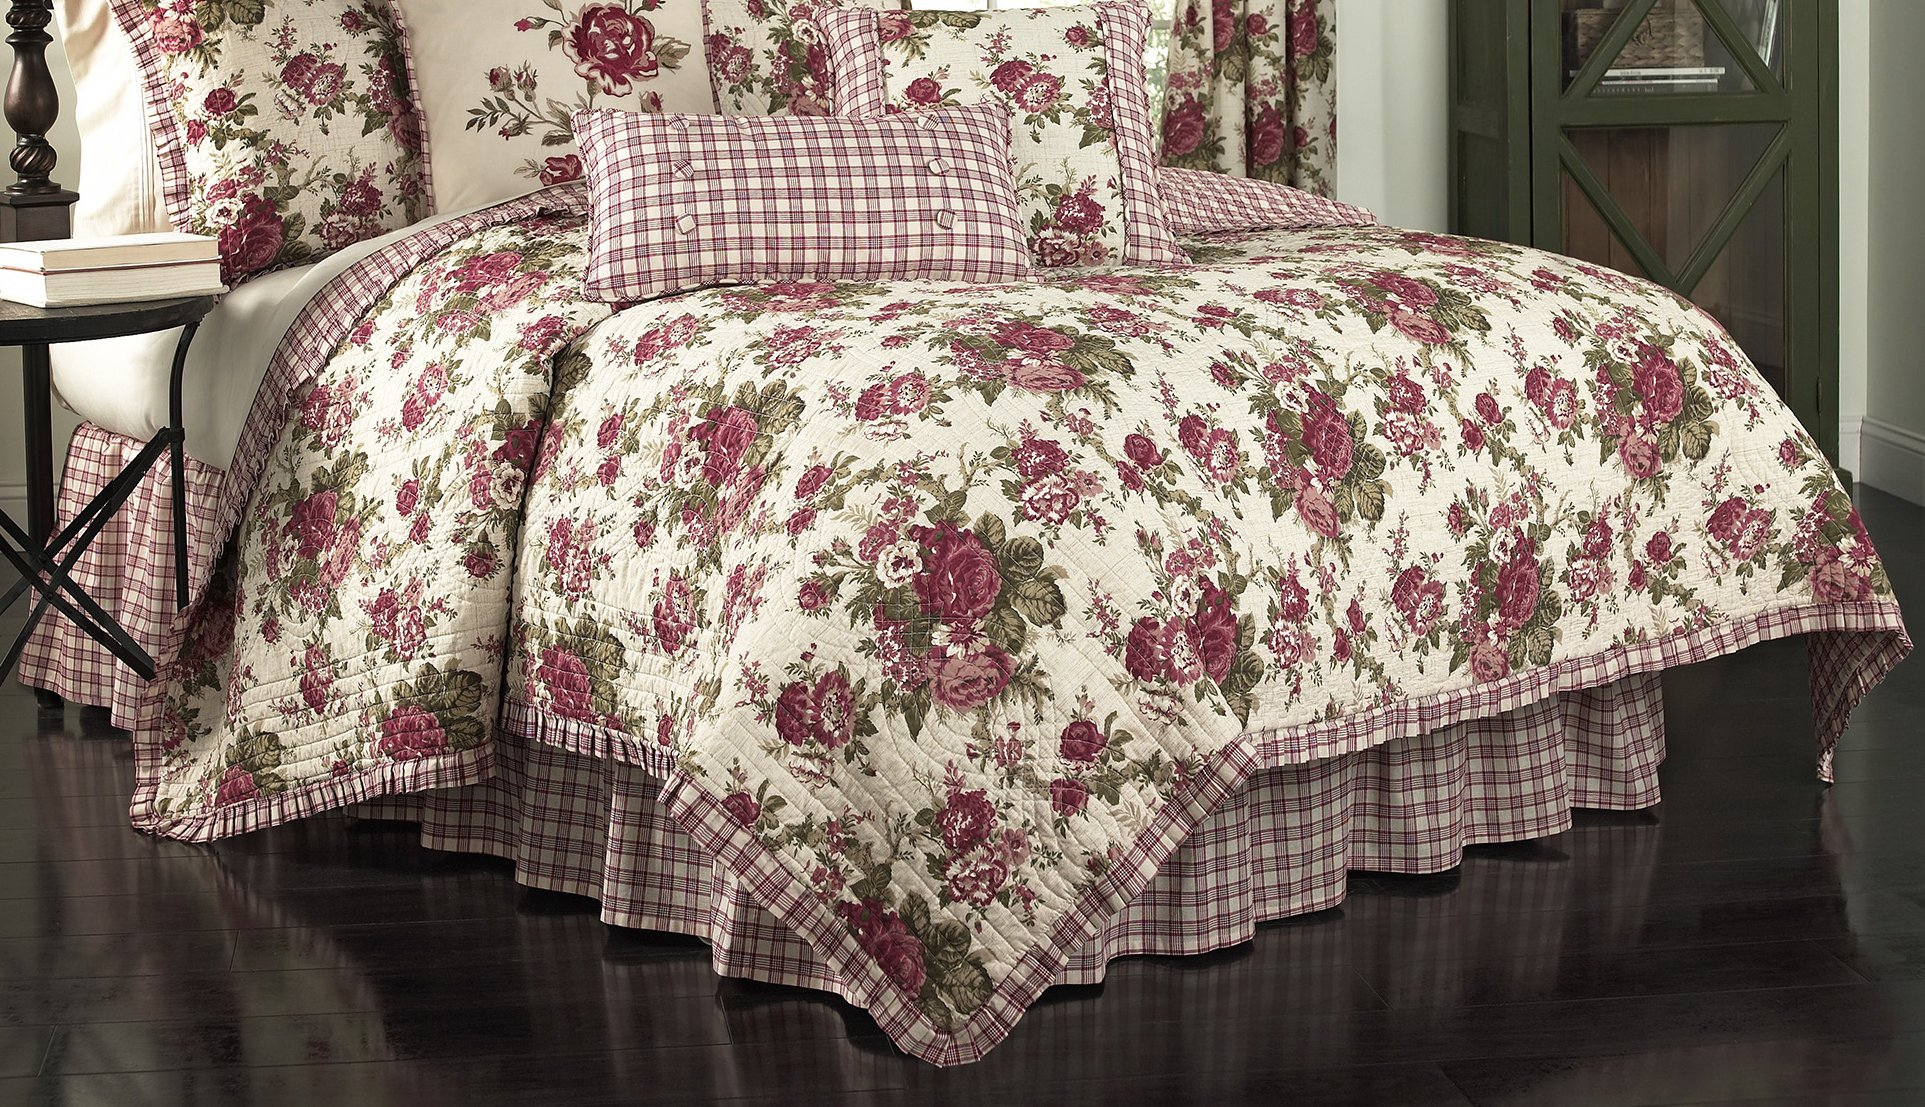 Waverly 14770BEDDF/QTSN Norfolk 90-Inch by 88-Inch Reversible 4 Piece Full/Queen Quilt Collection, Tea Stain